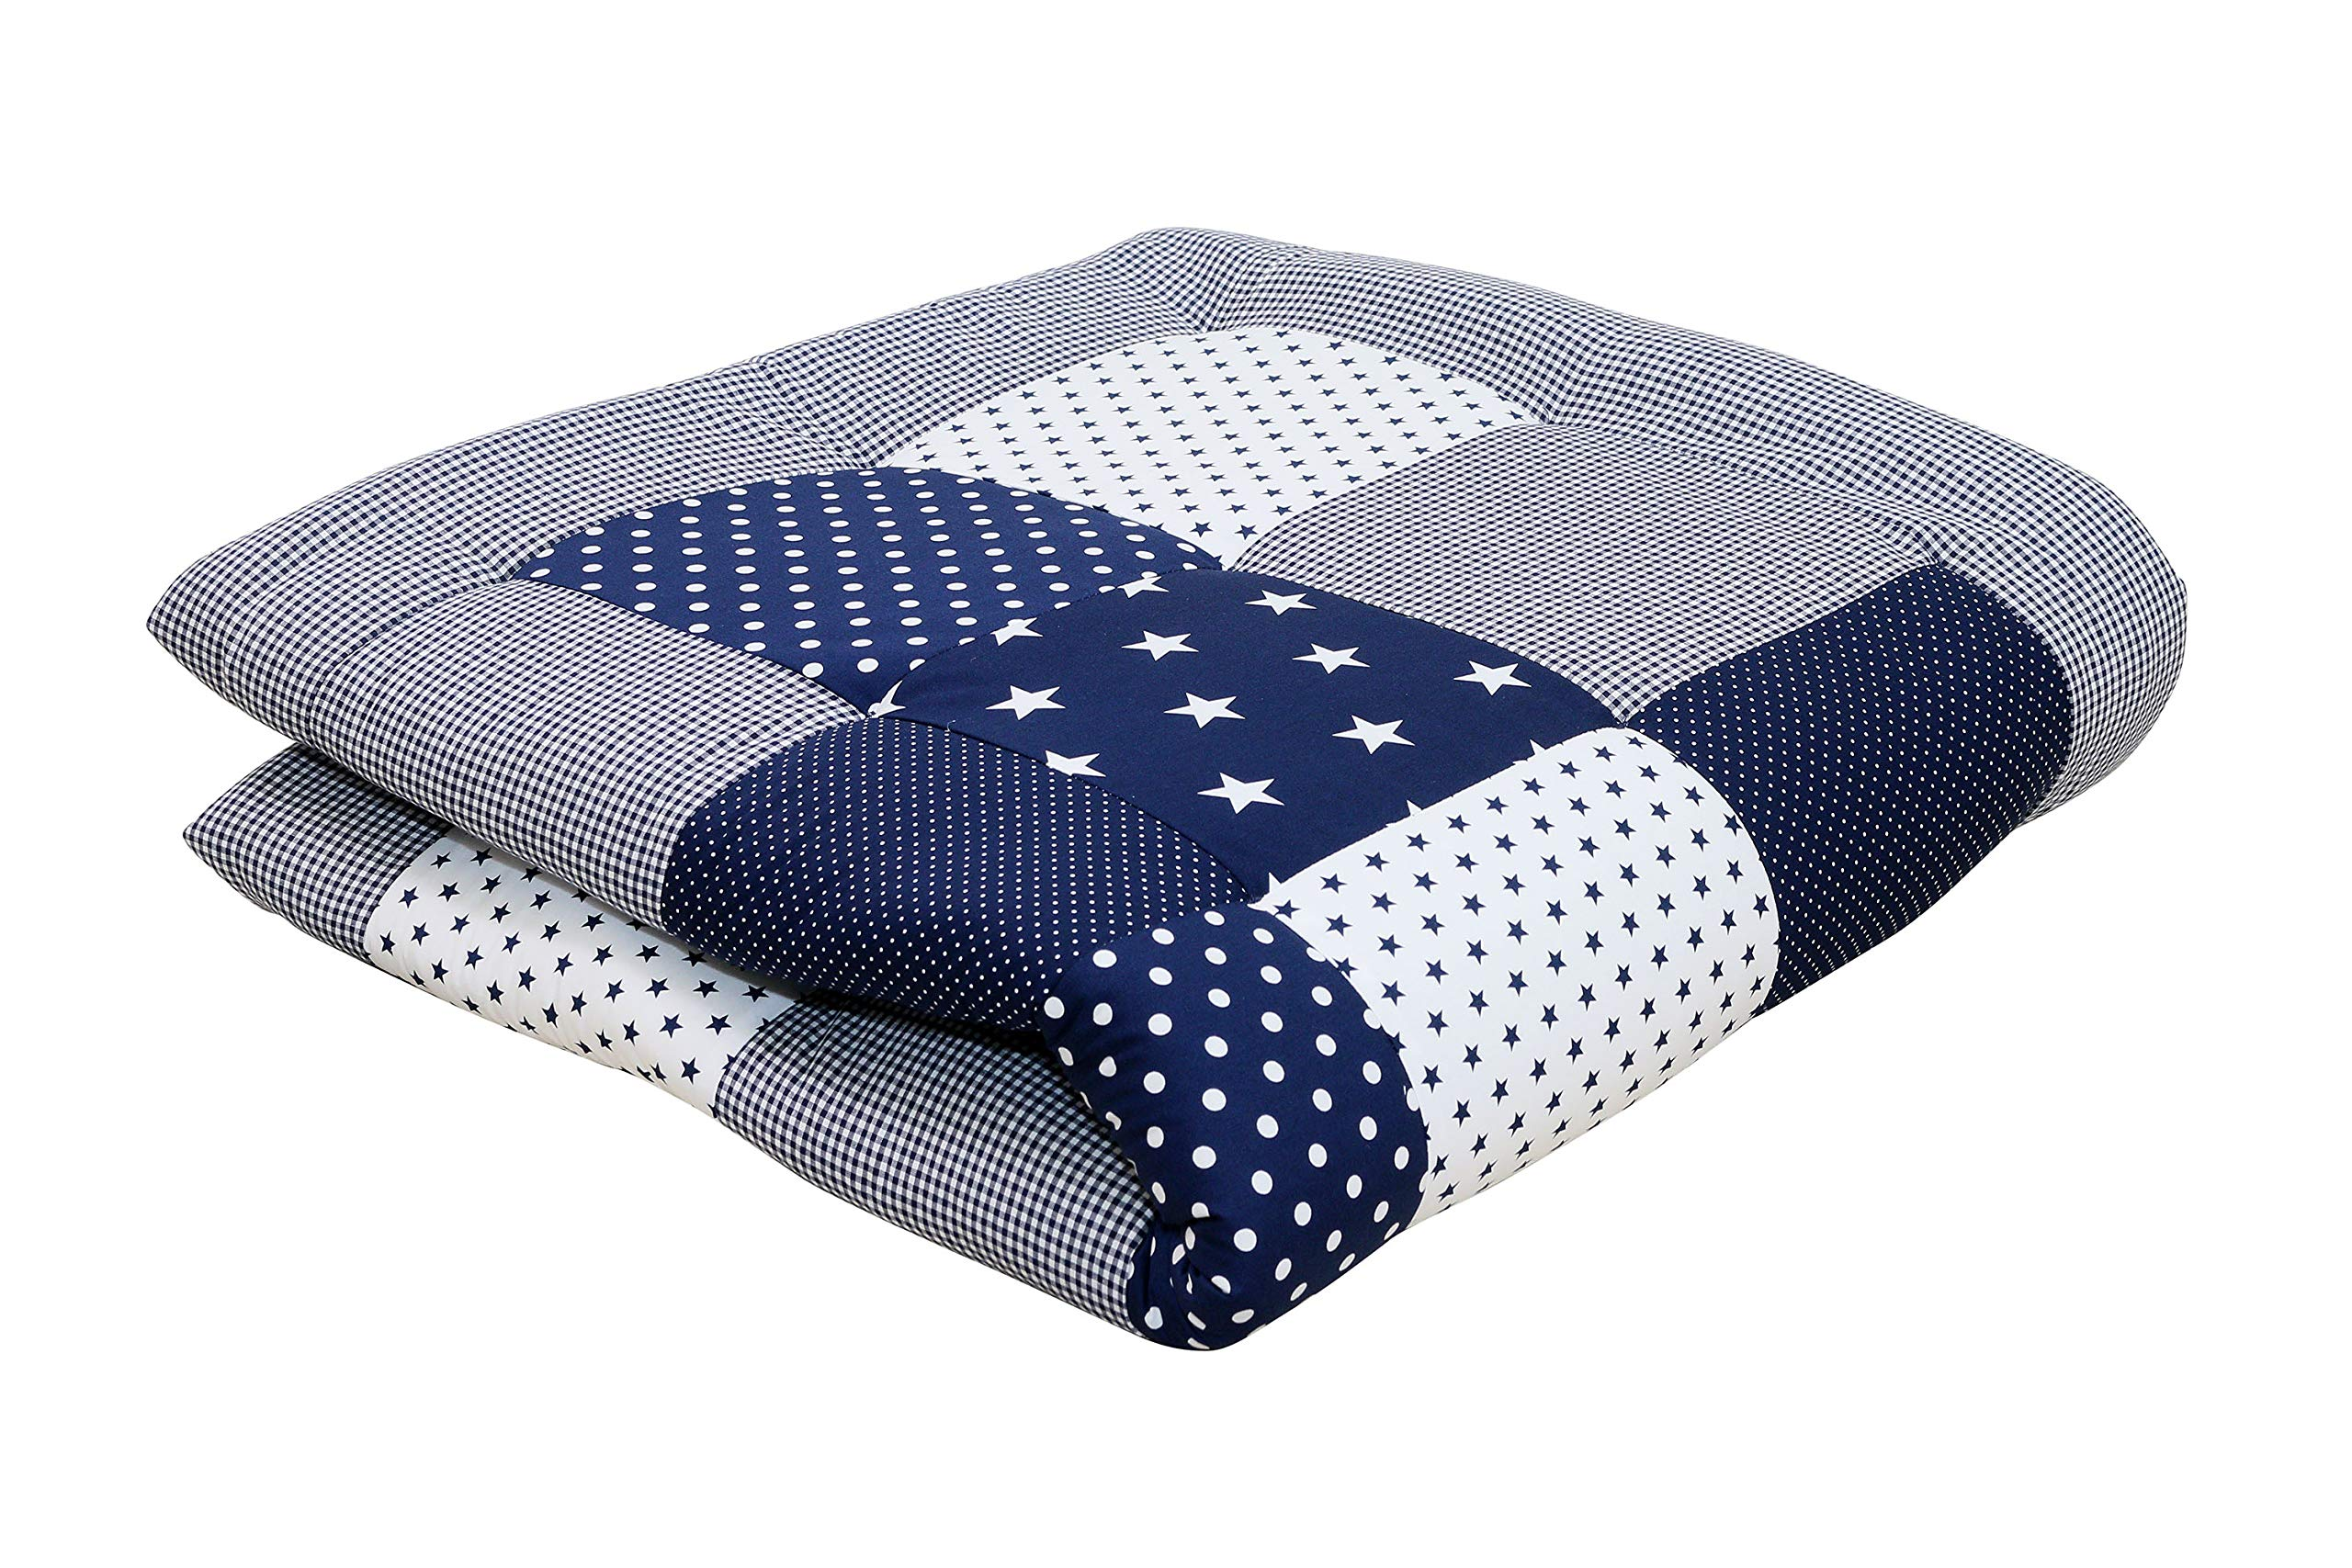 """Soft Padded Baby Play Mat Thick by ULLENBOOM - 40"""" x 40"""" - Polka Dot/Star - Infant Activity Blanket - Boys Blue/White"""